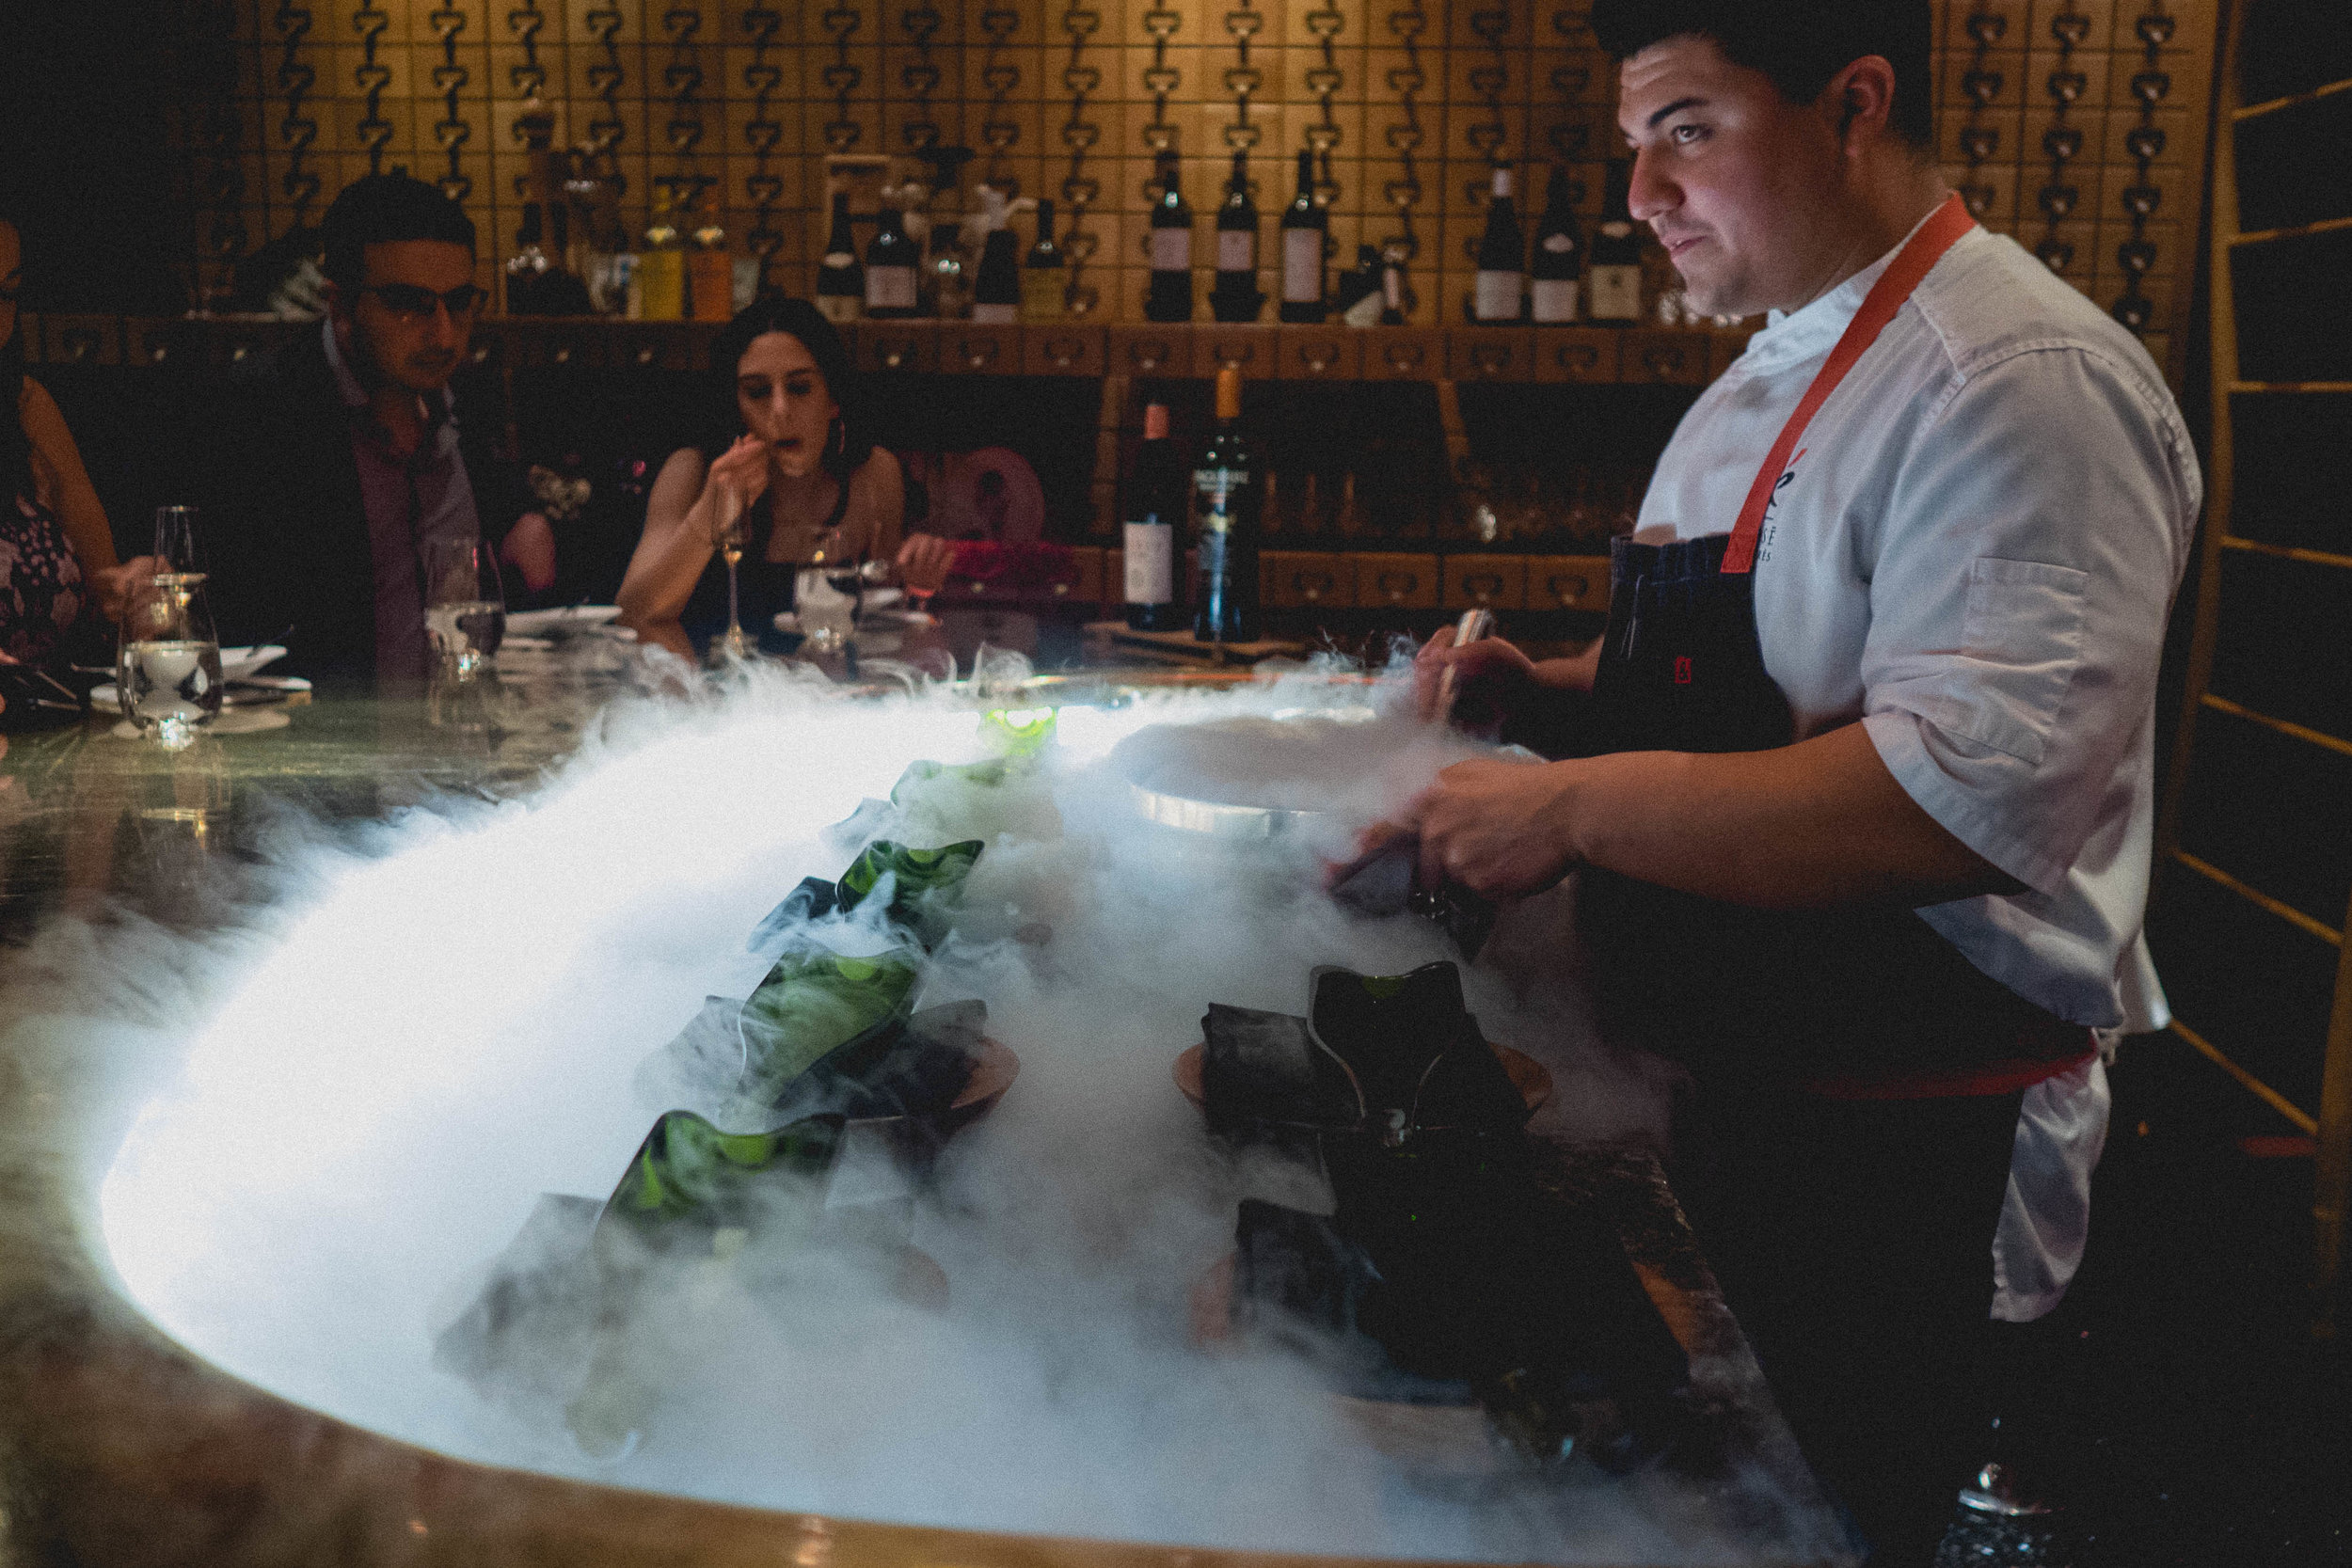 dinner theatrics with dry ice.